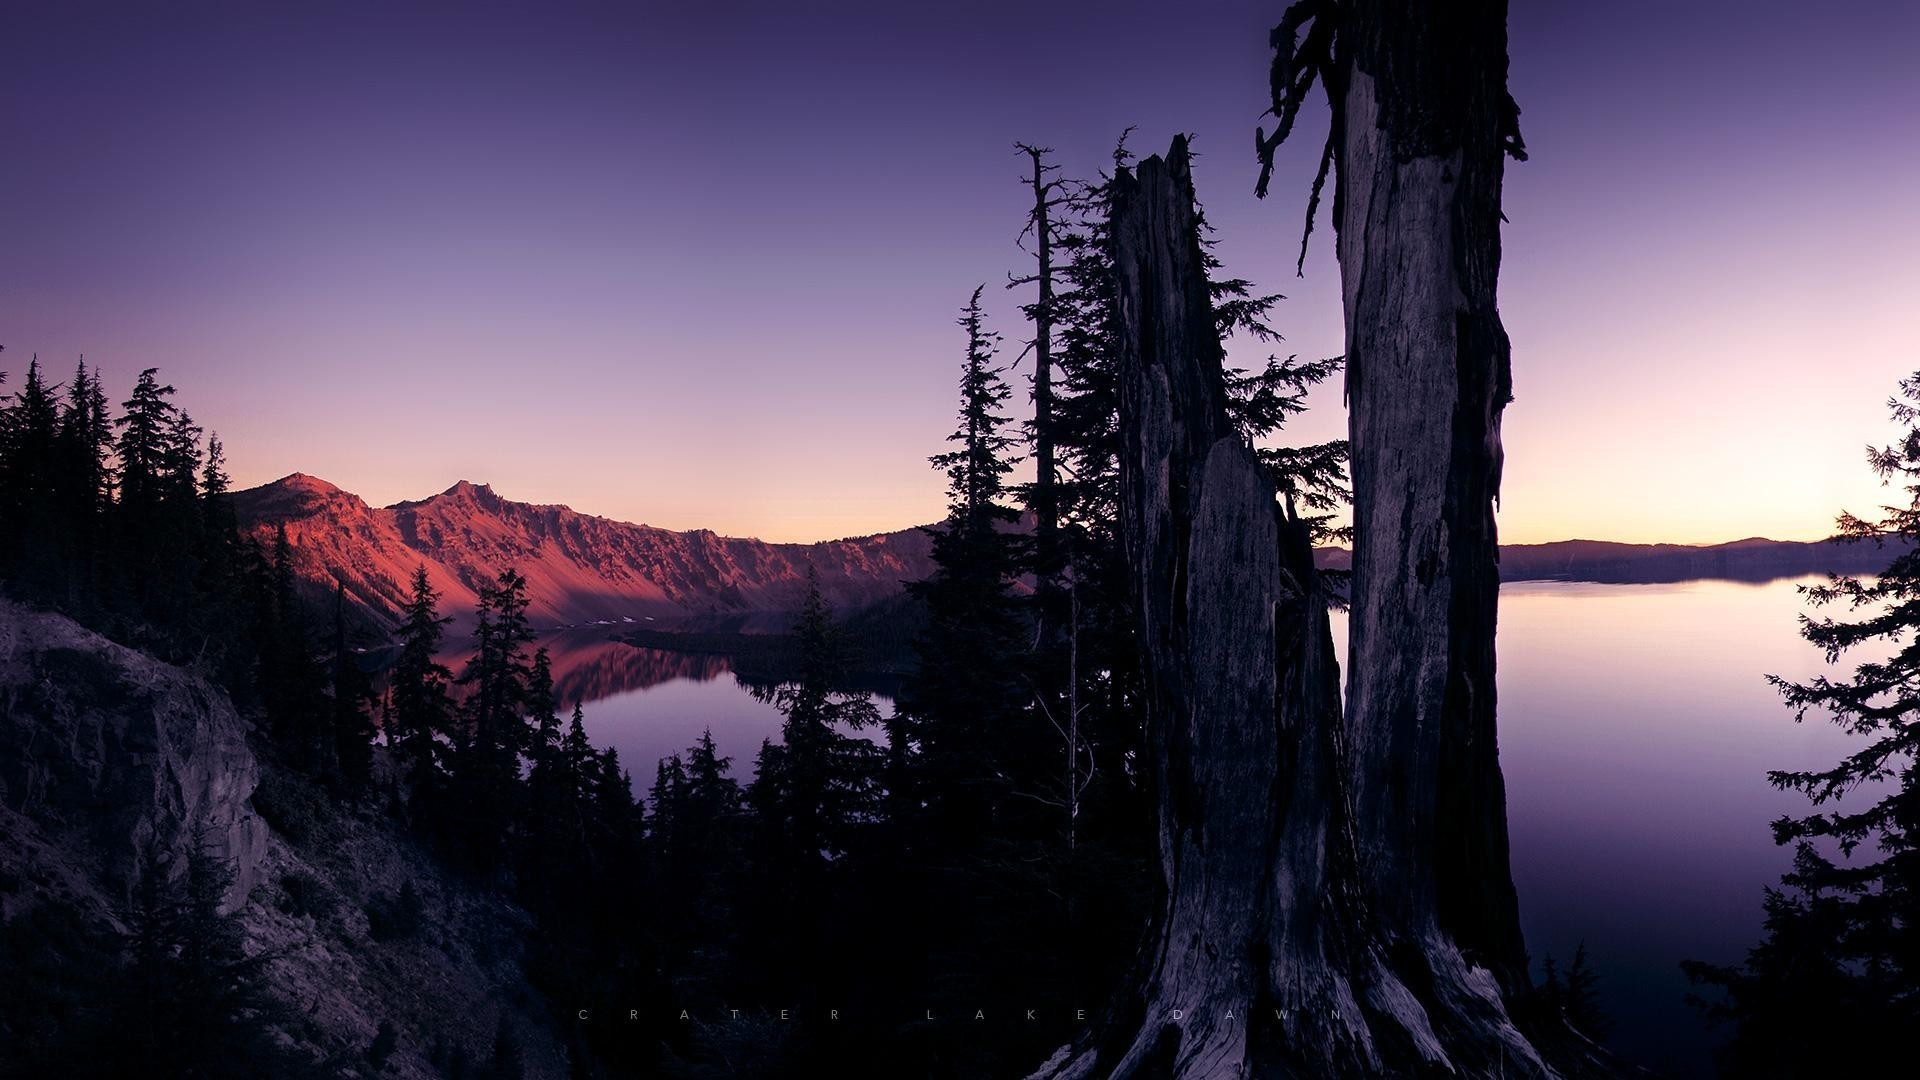 greg martin crater lake dawn lakes landscapes wallpaper